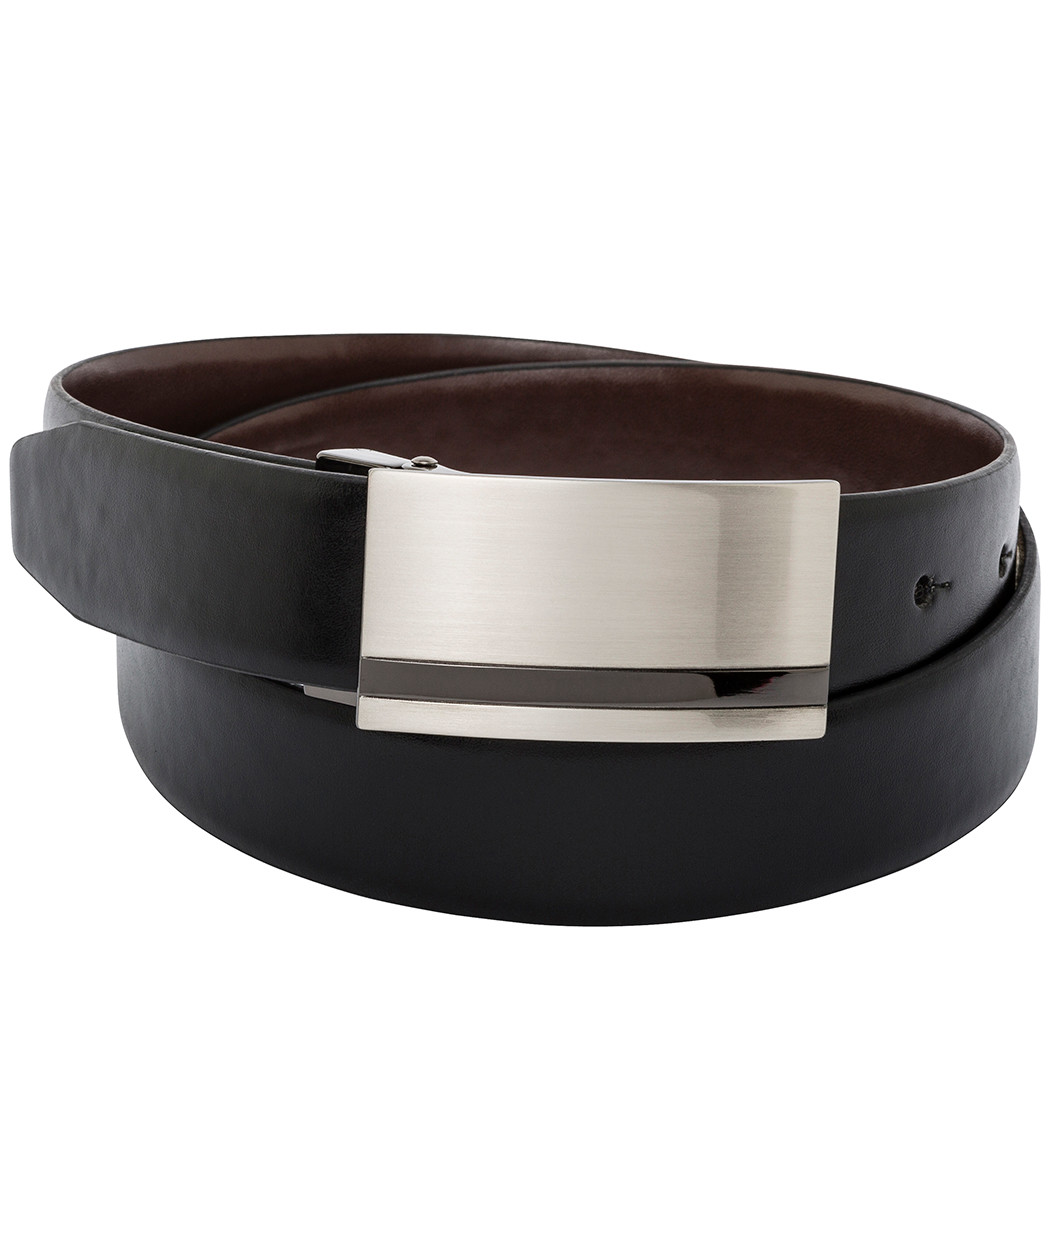 Dress Mens belts pictures advise dress for spring in 2019